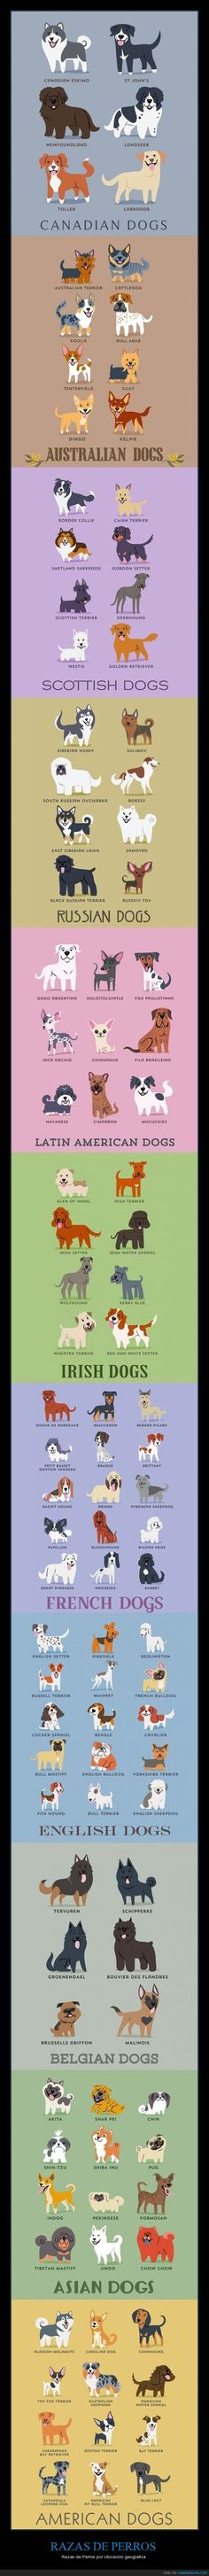 Types of dogs by region